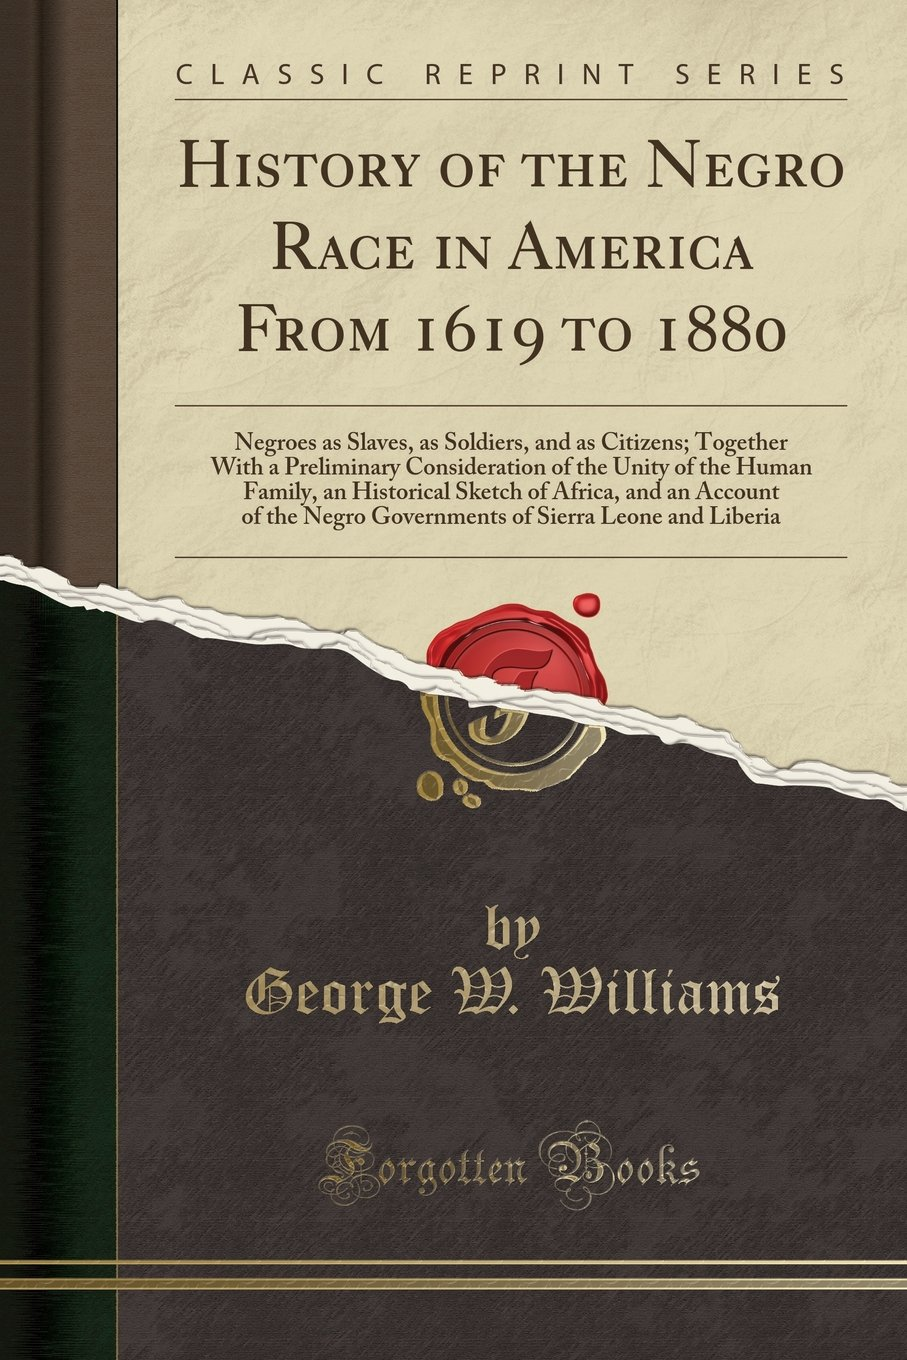 Download History of the Negro Race in America From 1619 to 1880: Negroes as Slaves, as Soldiers, and as Citizens; Together With a Preliminary Consideration of ... and an Account of the Negro Governments of pdf epub